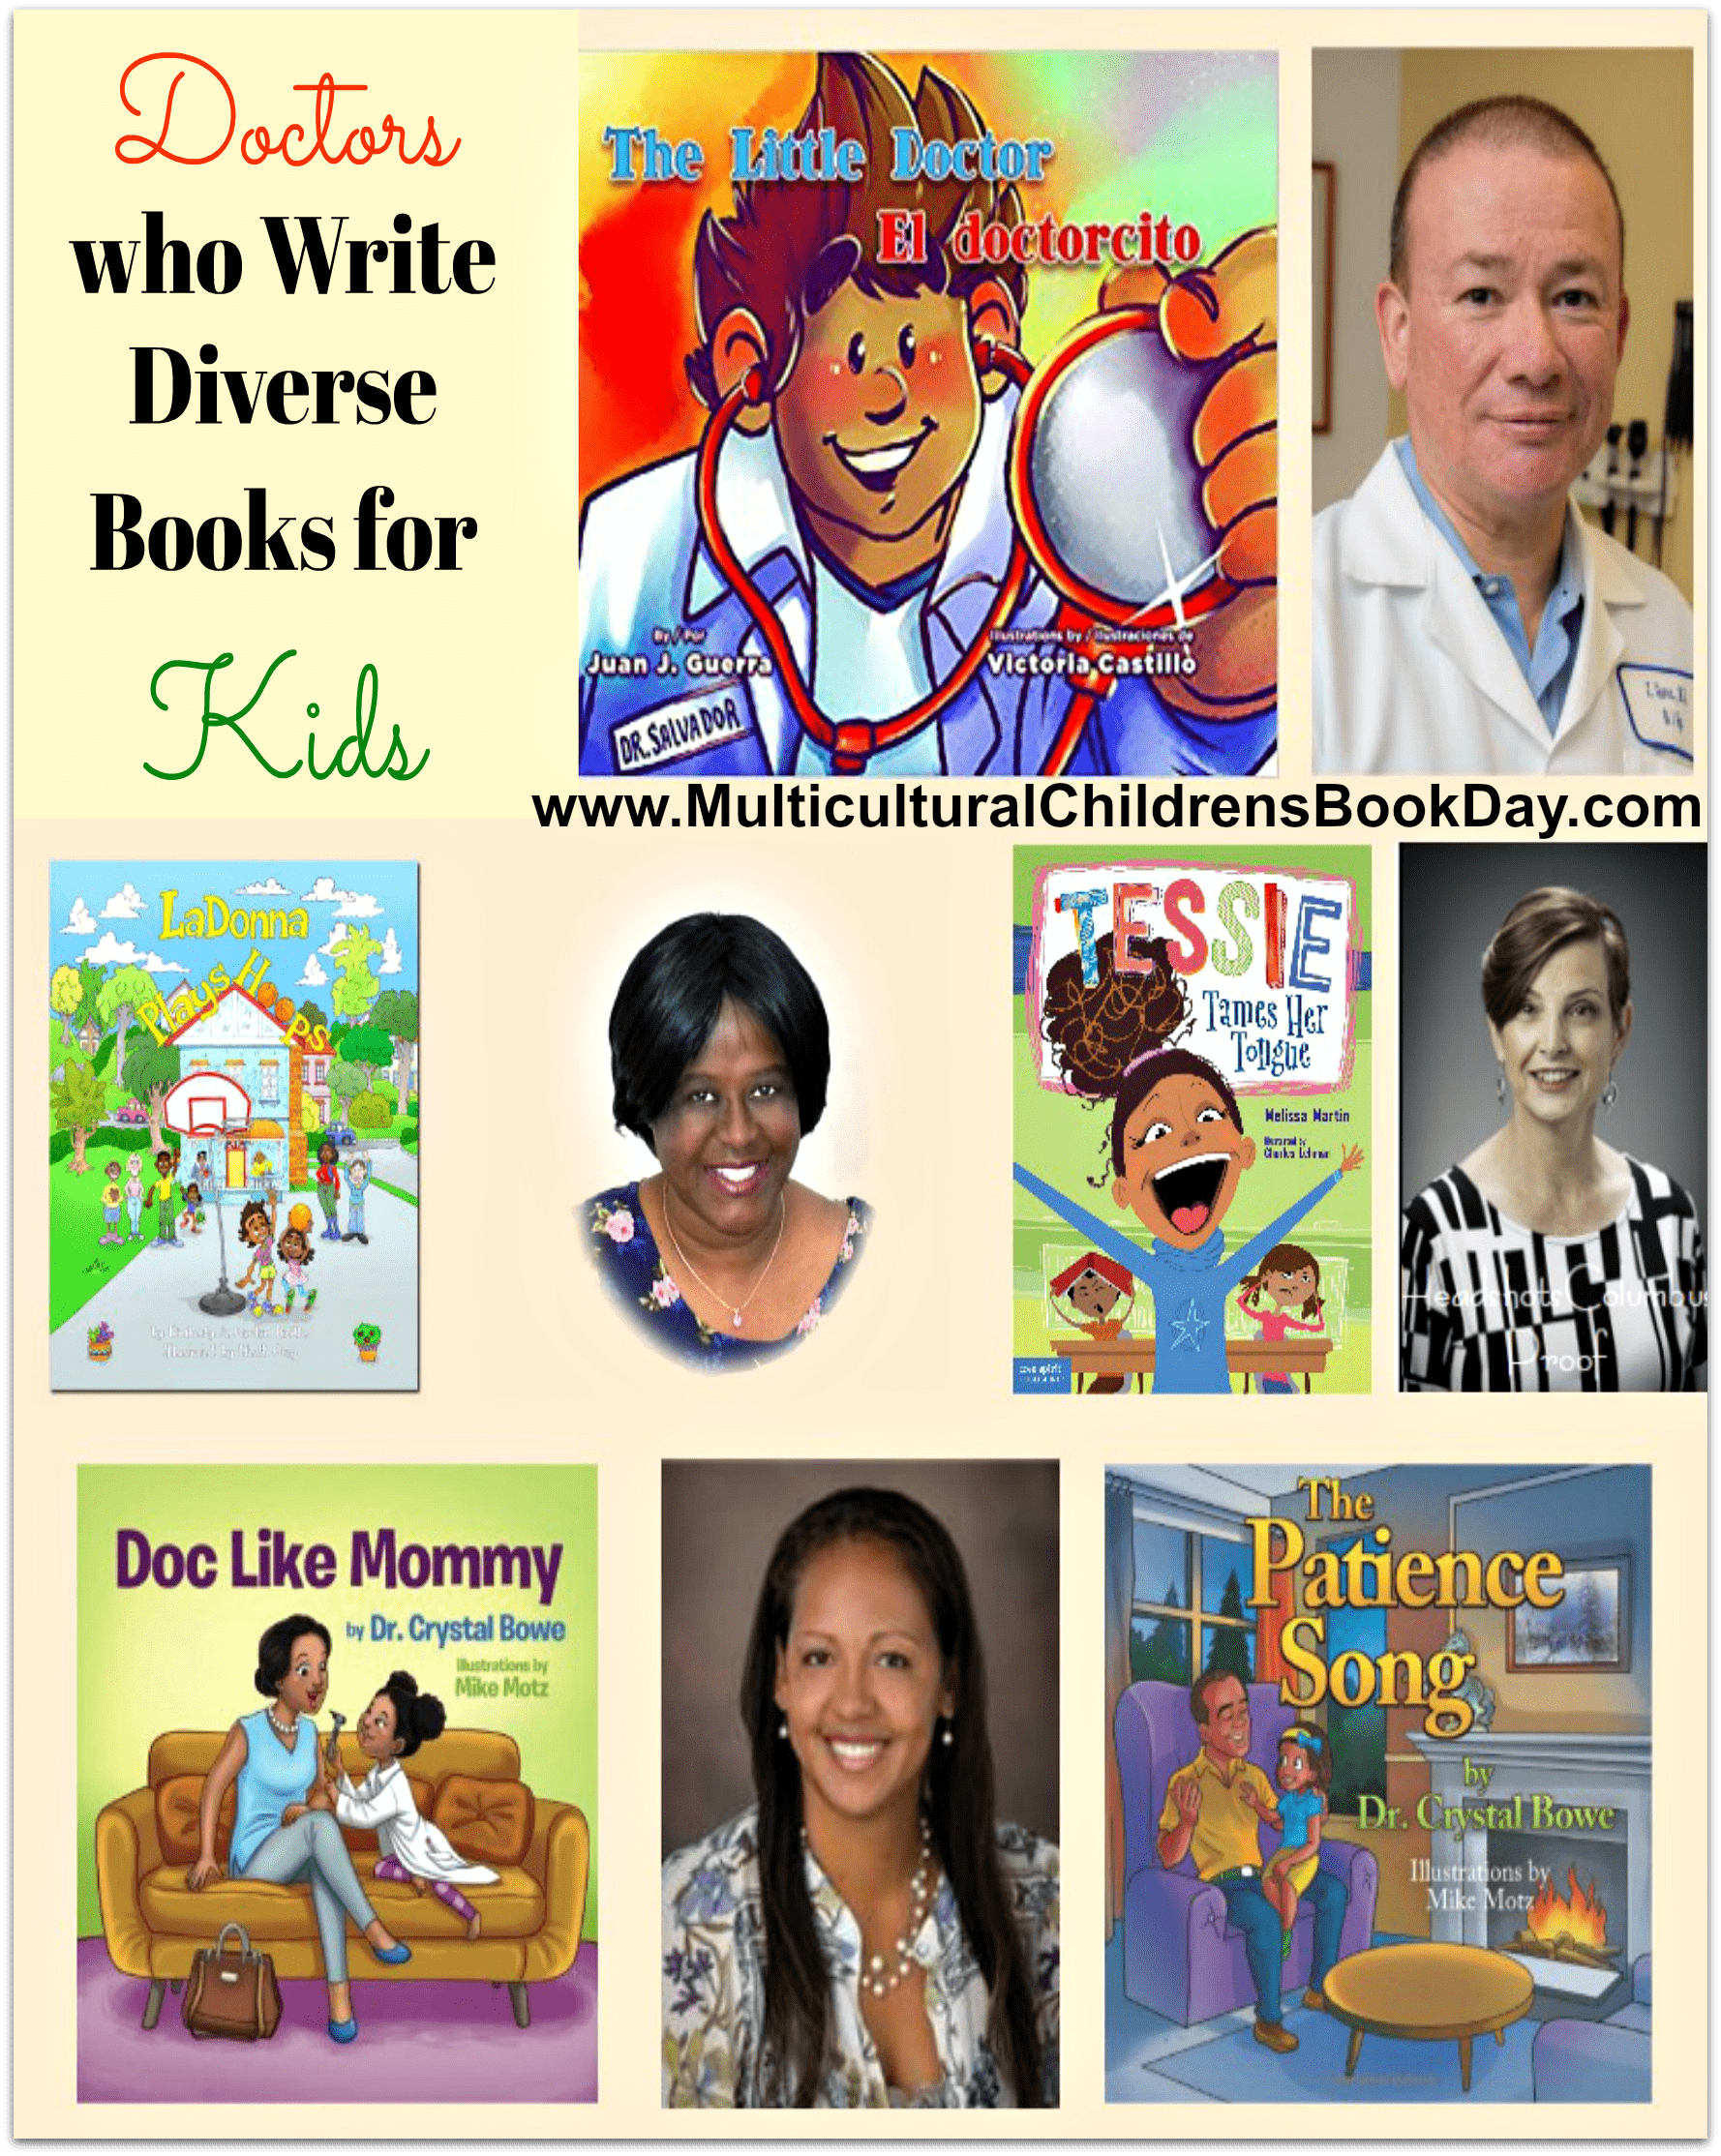 Doctors who Write Diverse Books for Kids